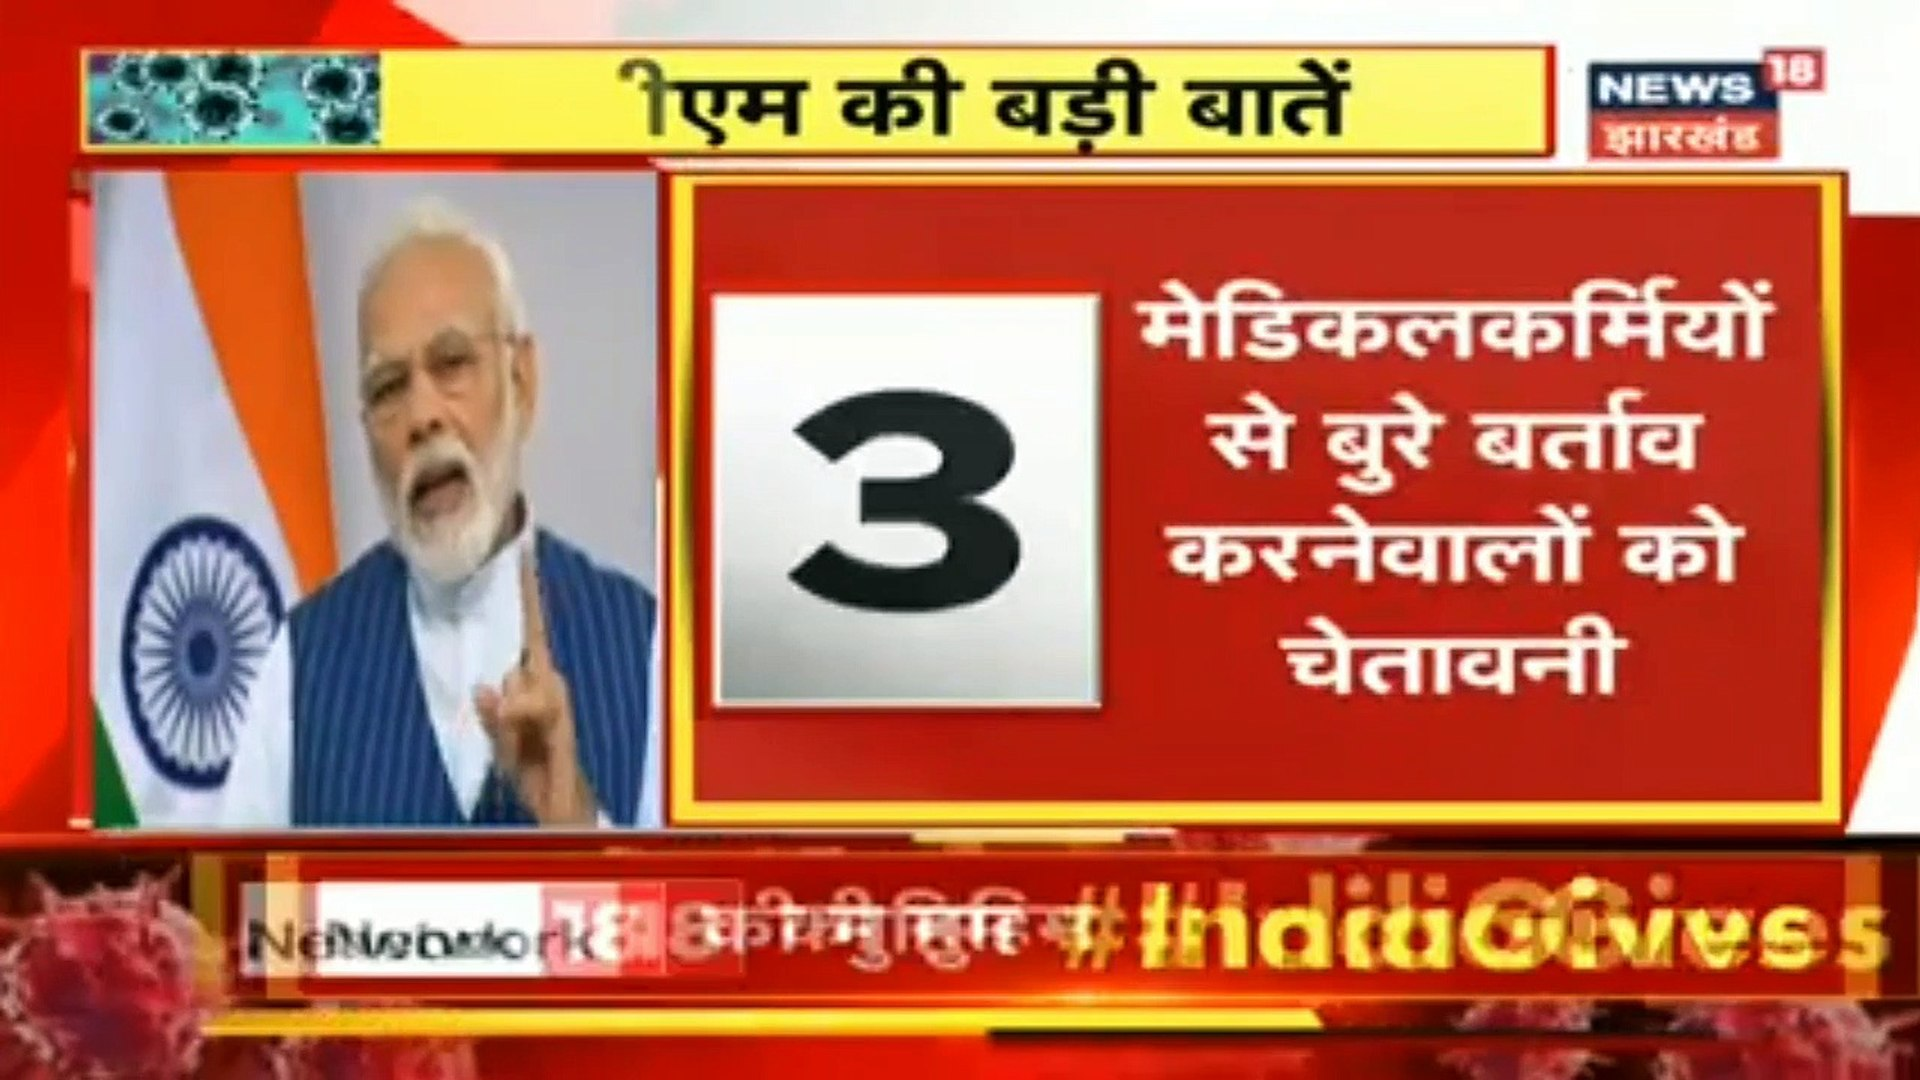 PM Modi Speech to Stay At Home For 21 days